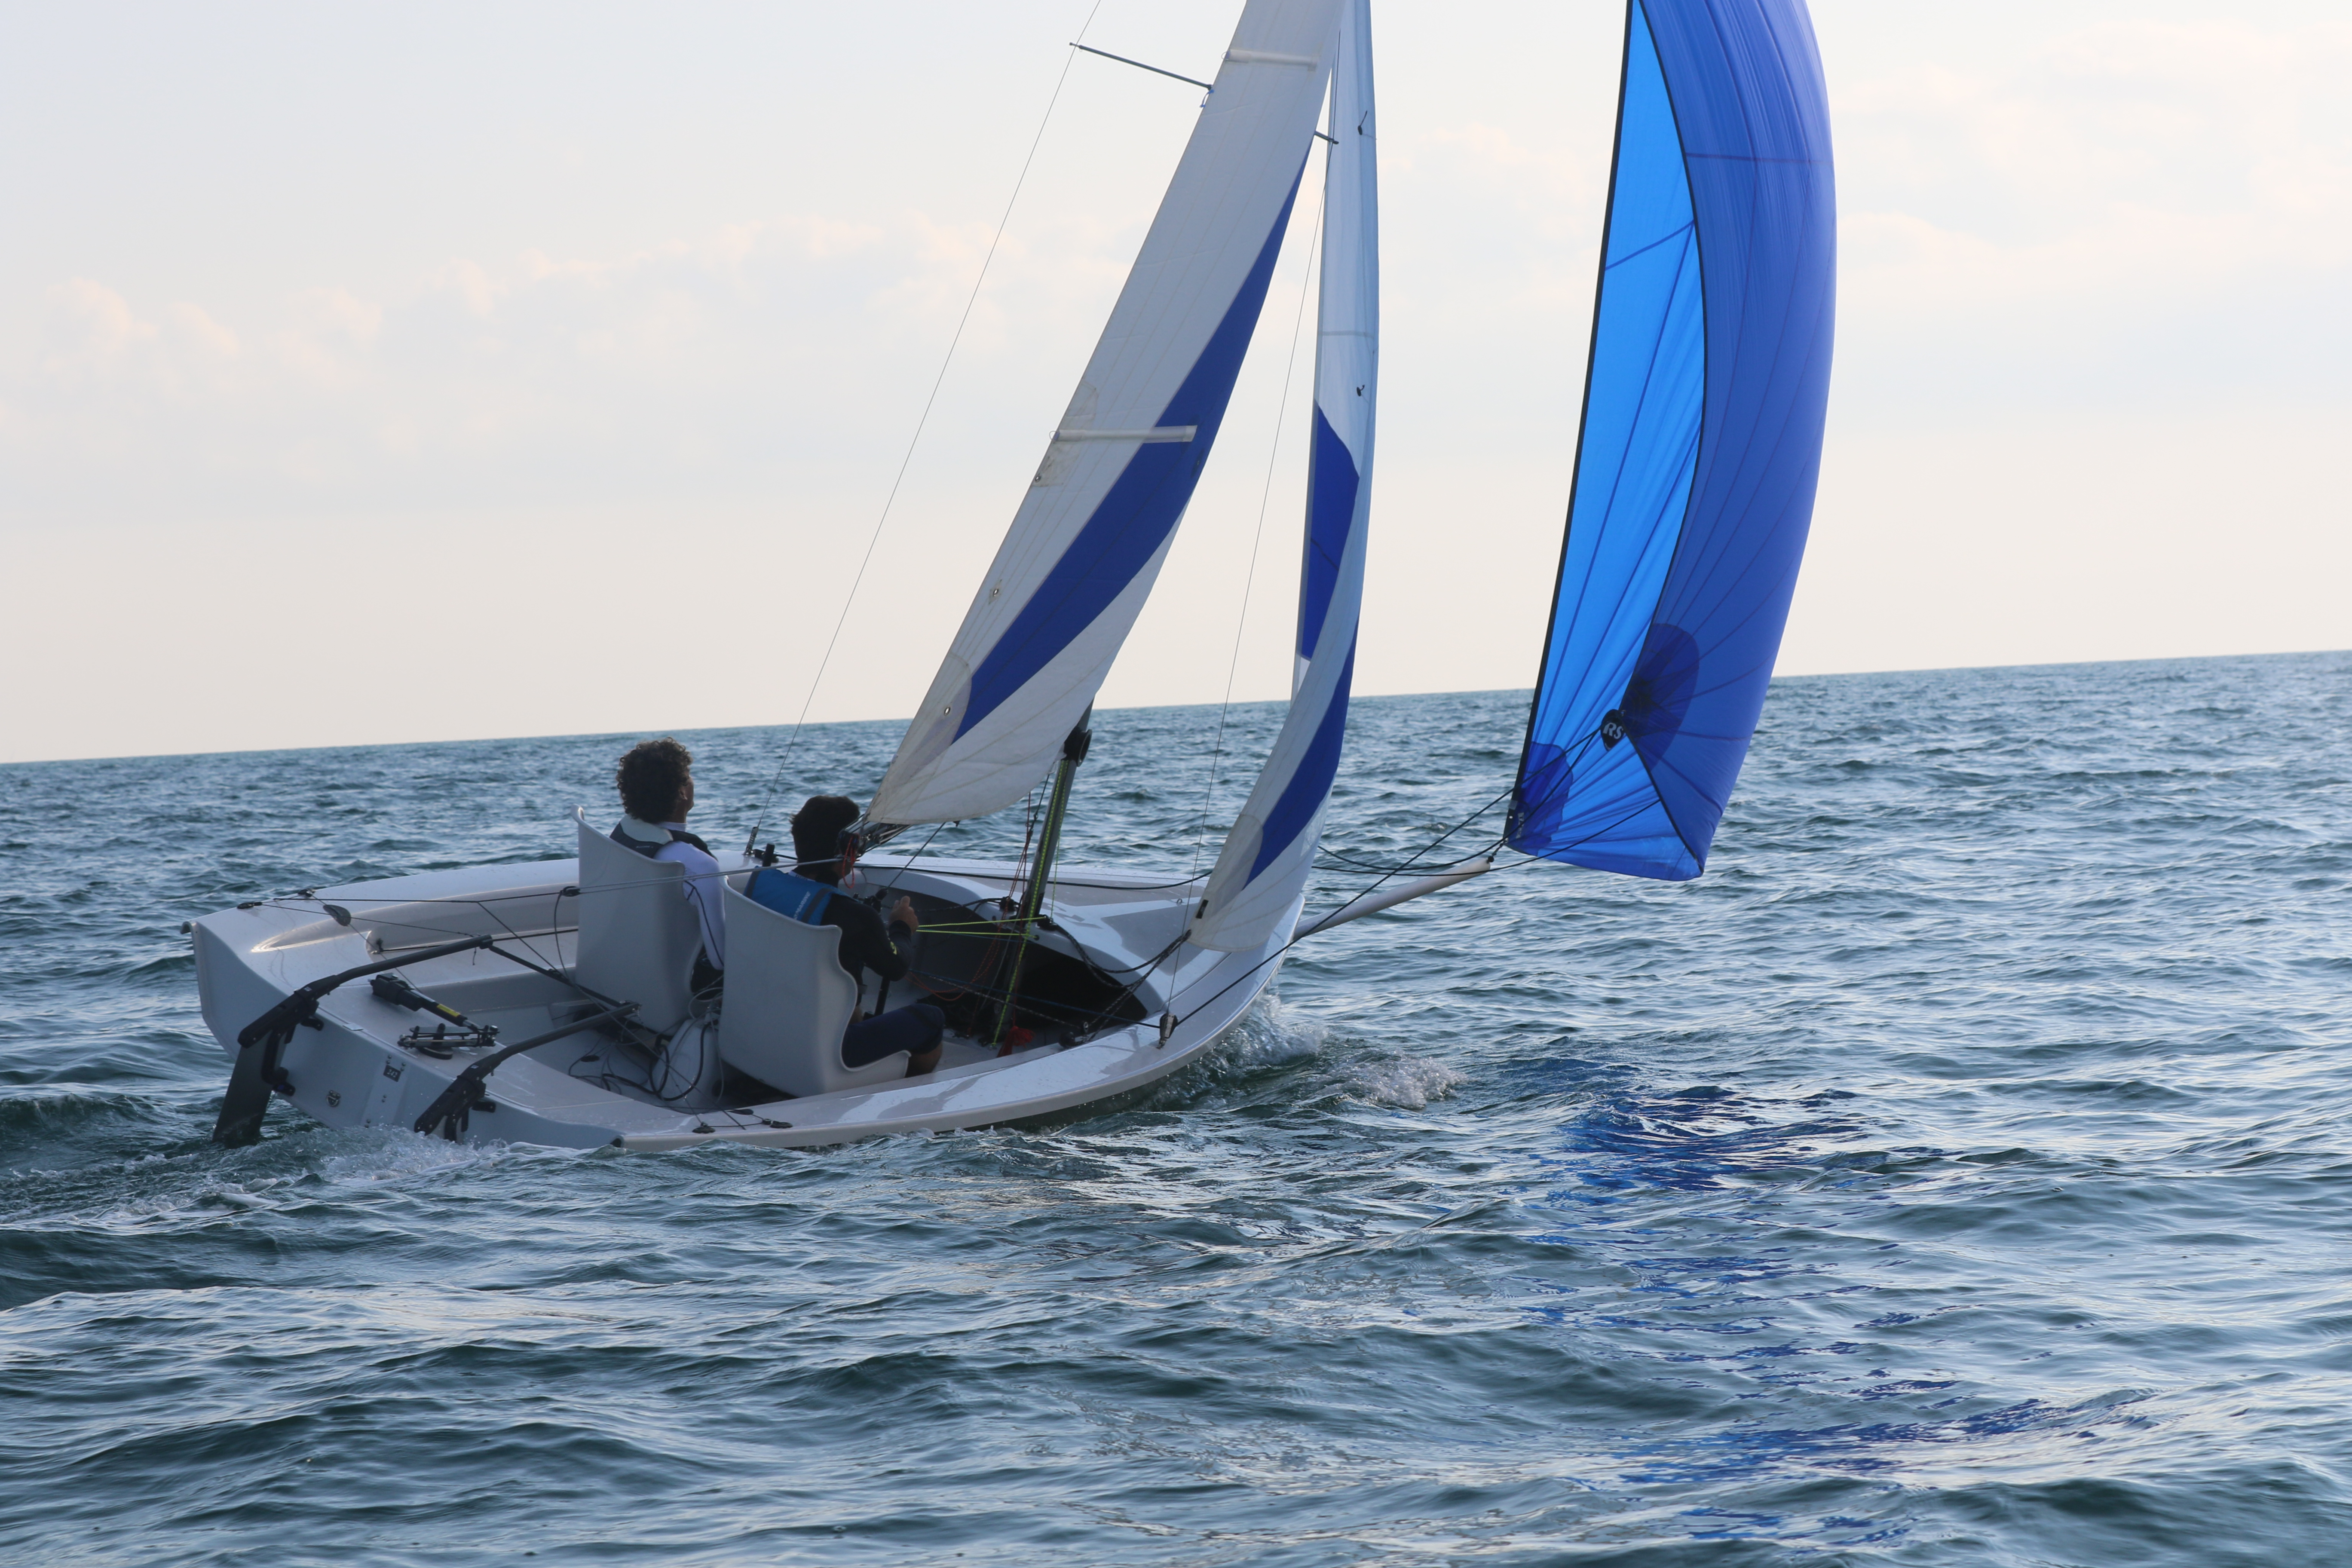 Volvo Winter Park >> 8F0A1417 - RS Sailing, the world's largest small-sailboat manufacturer